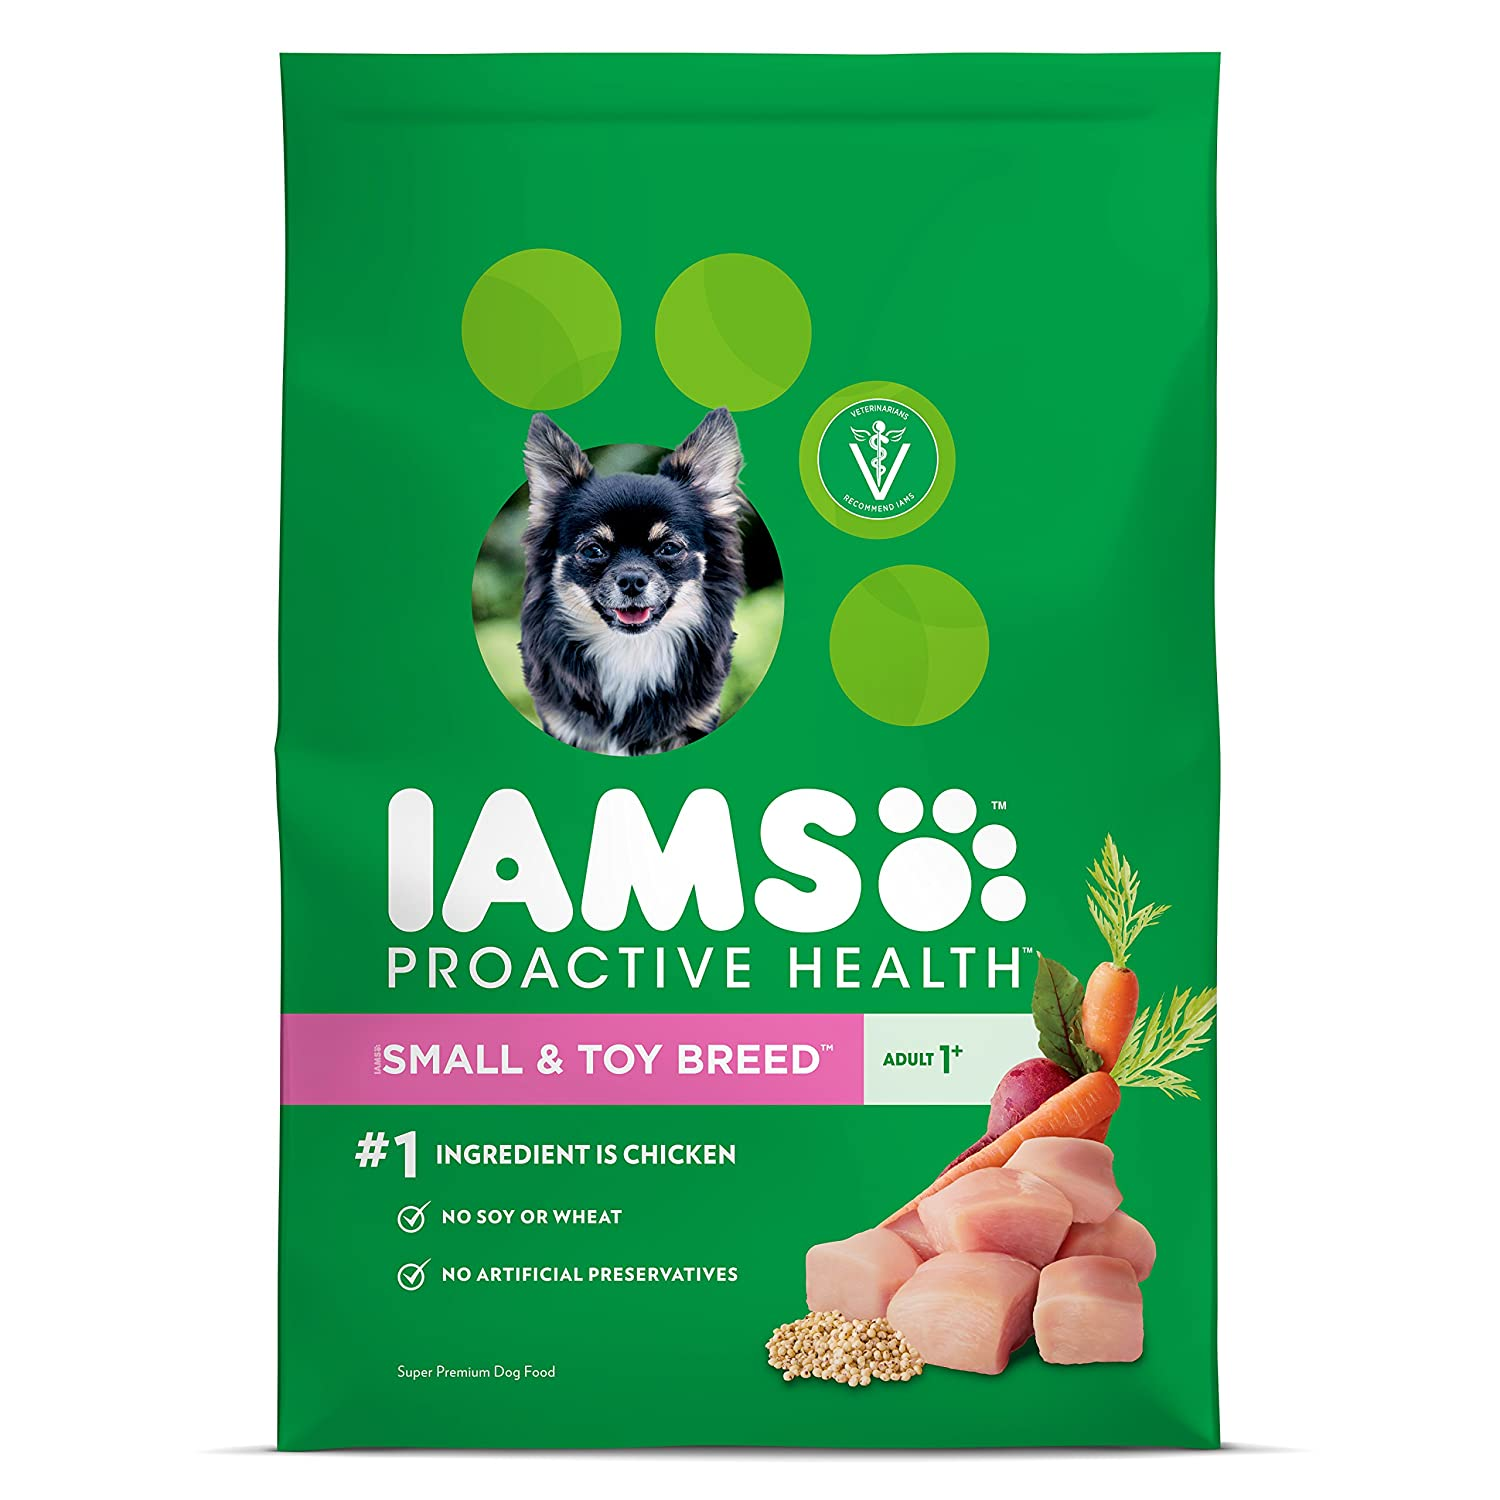 IAMS Proactive Health Dry Dog Food, Small Toy Breed, 12.5 lbs. Standard Packaging